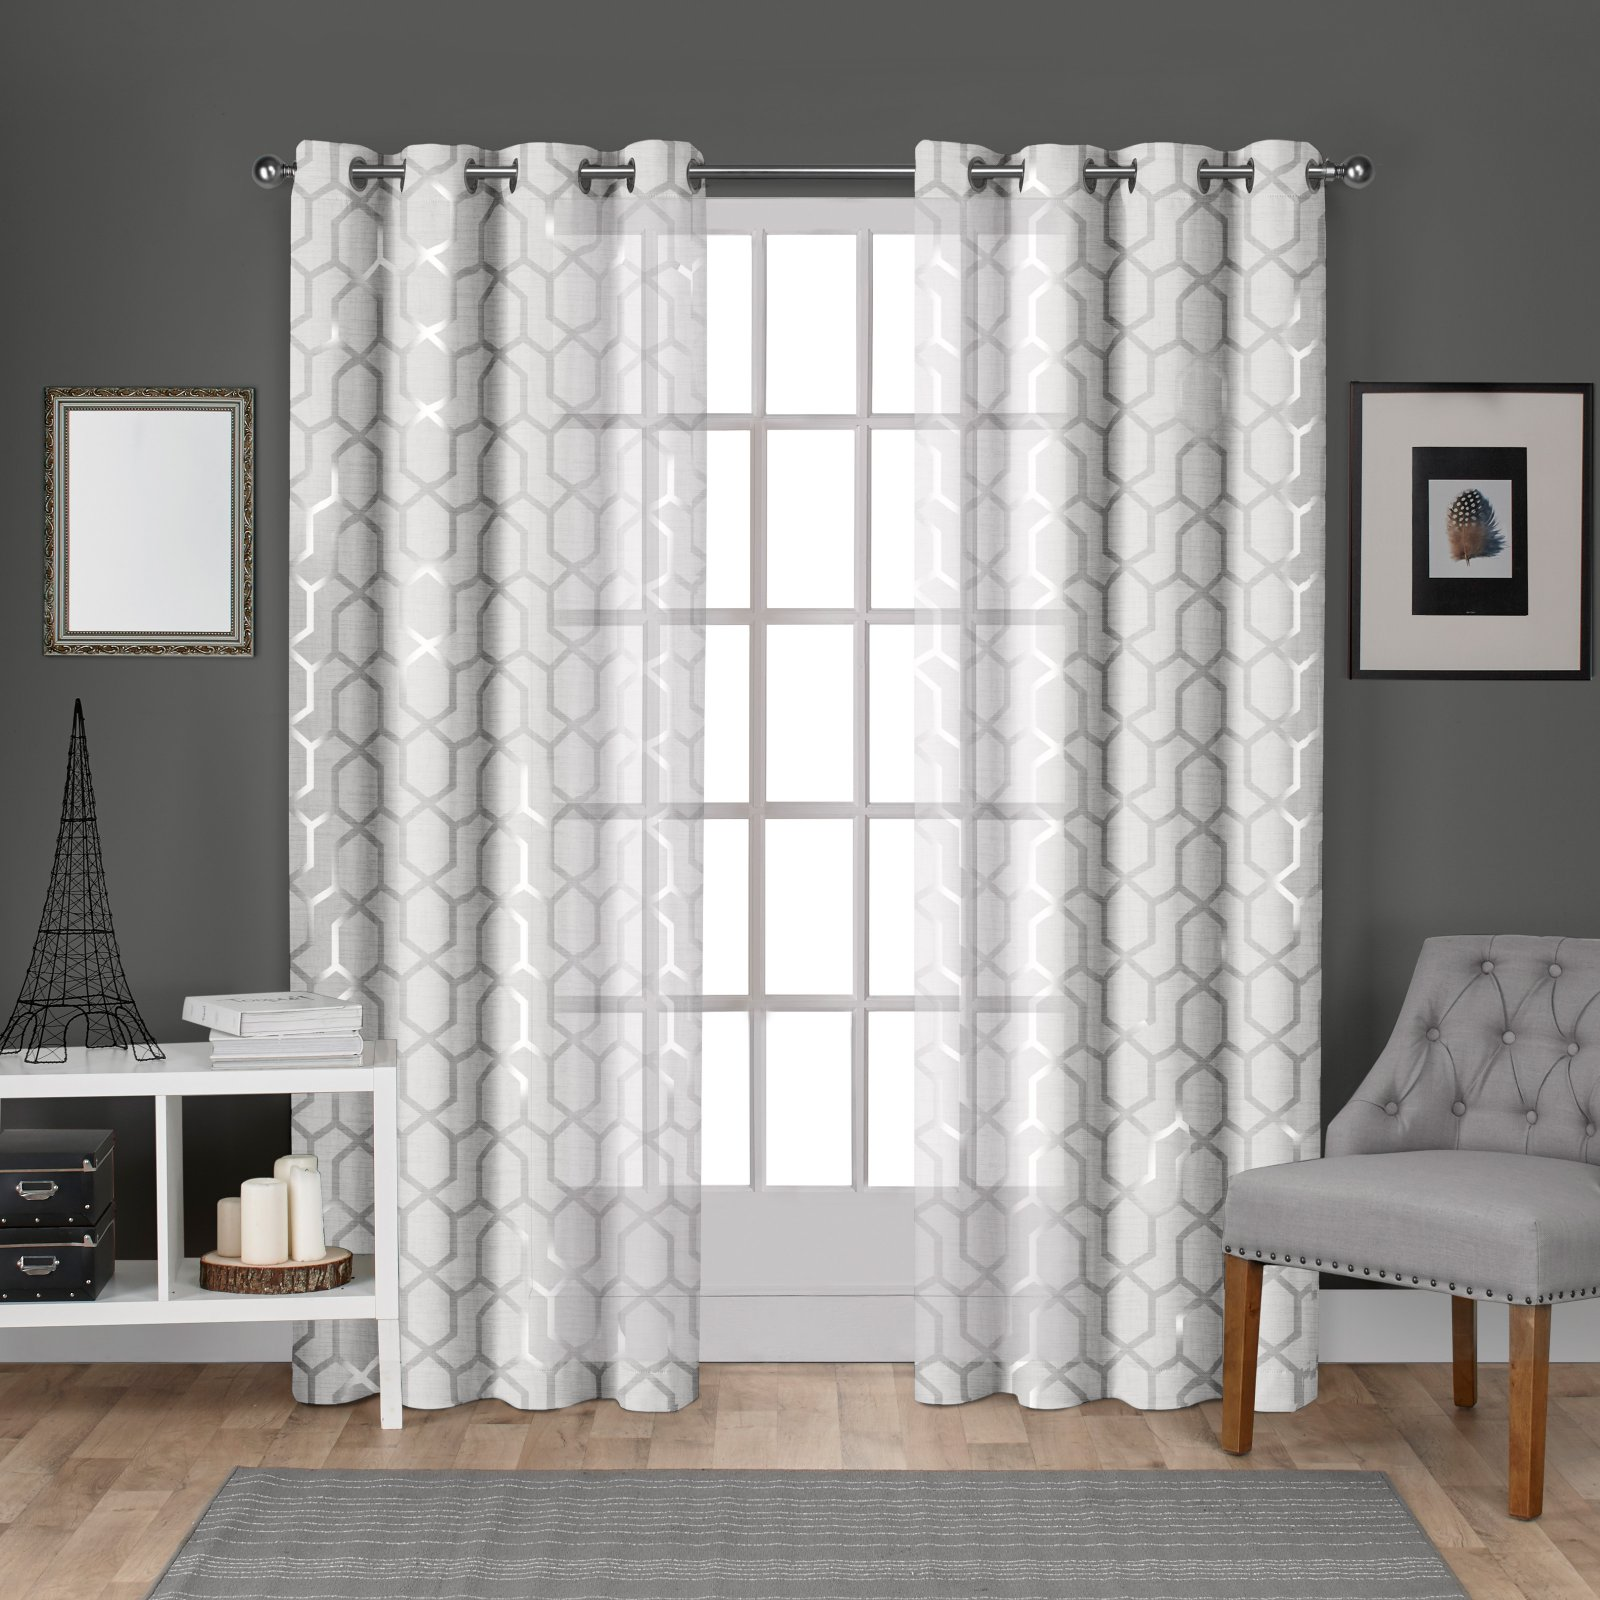 Exclusive Home Panza Metallic Geometric Print Sheer Window Curtain Panel Pair with Grommet Top